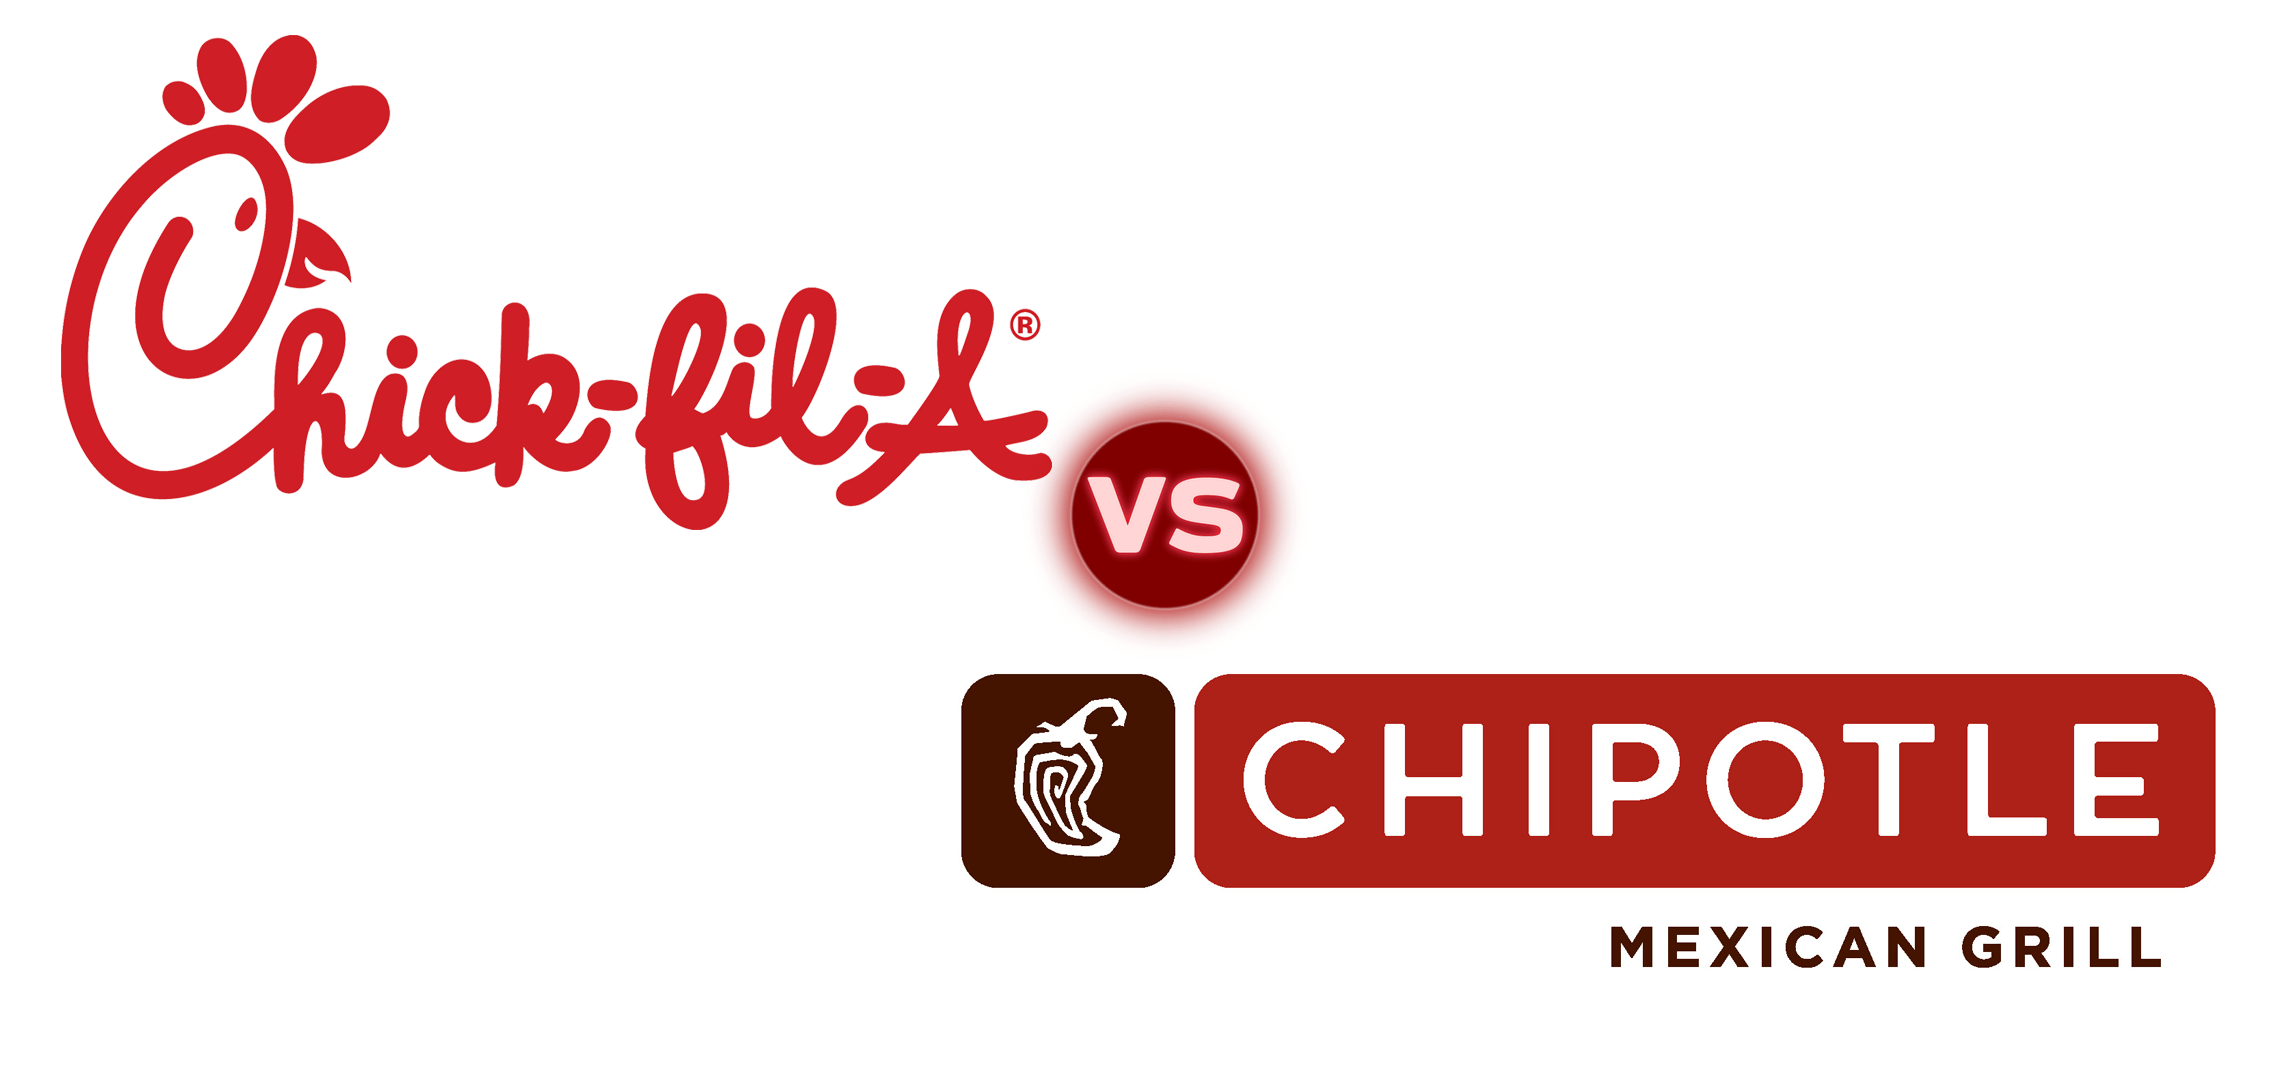 Chick-fil-A-vs-Chipotle